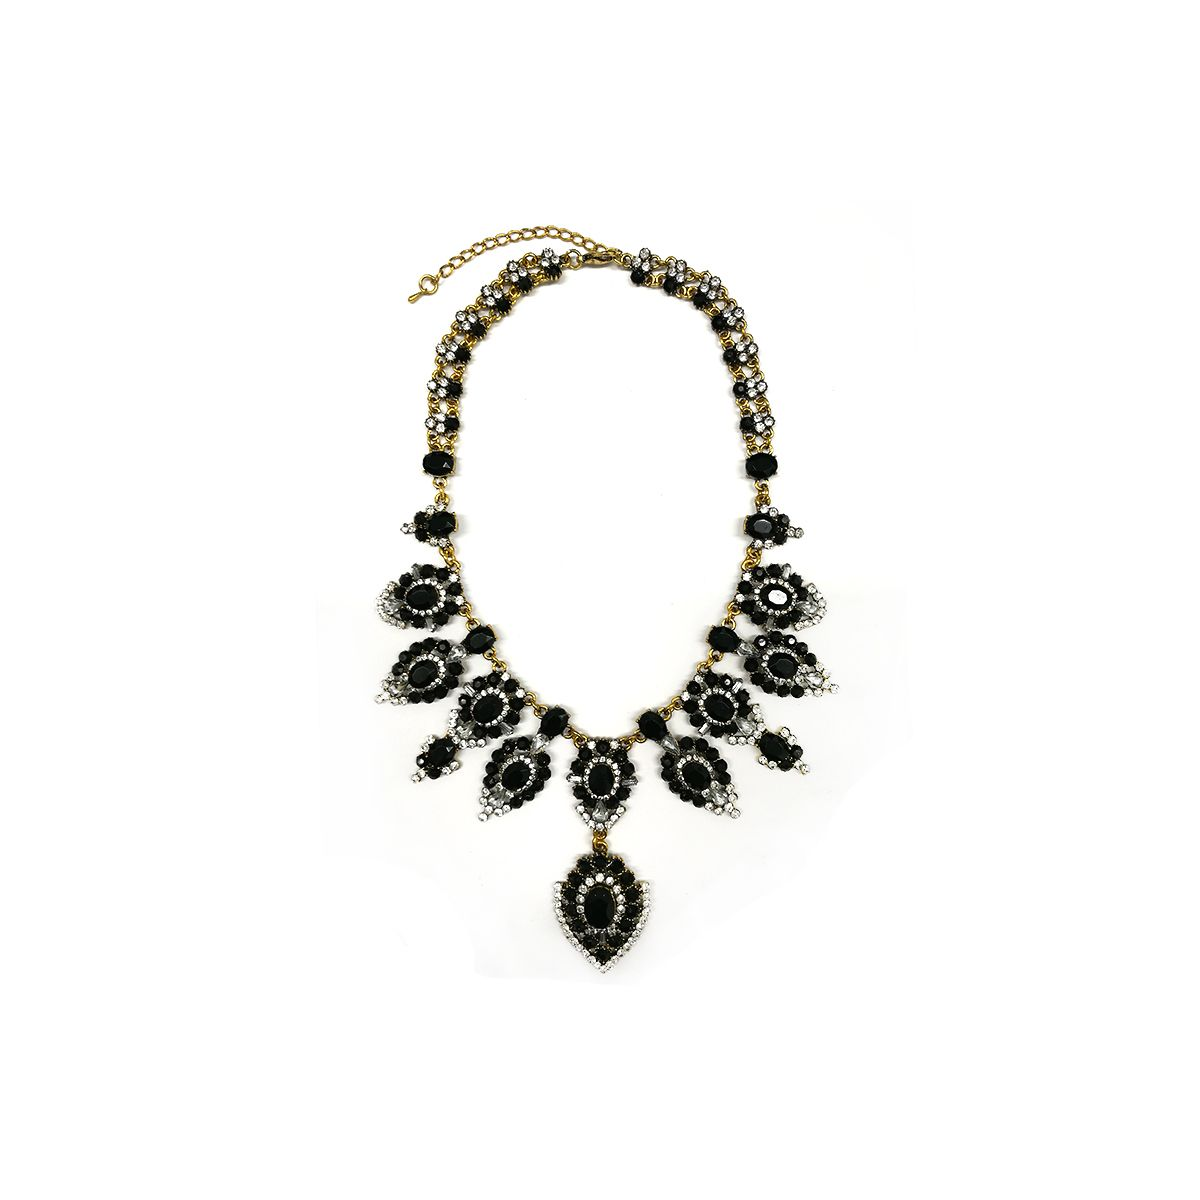 Floral Stone Necklace - Gold/Black (NH1409018BK)